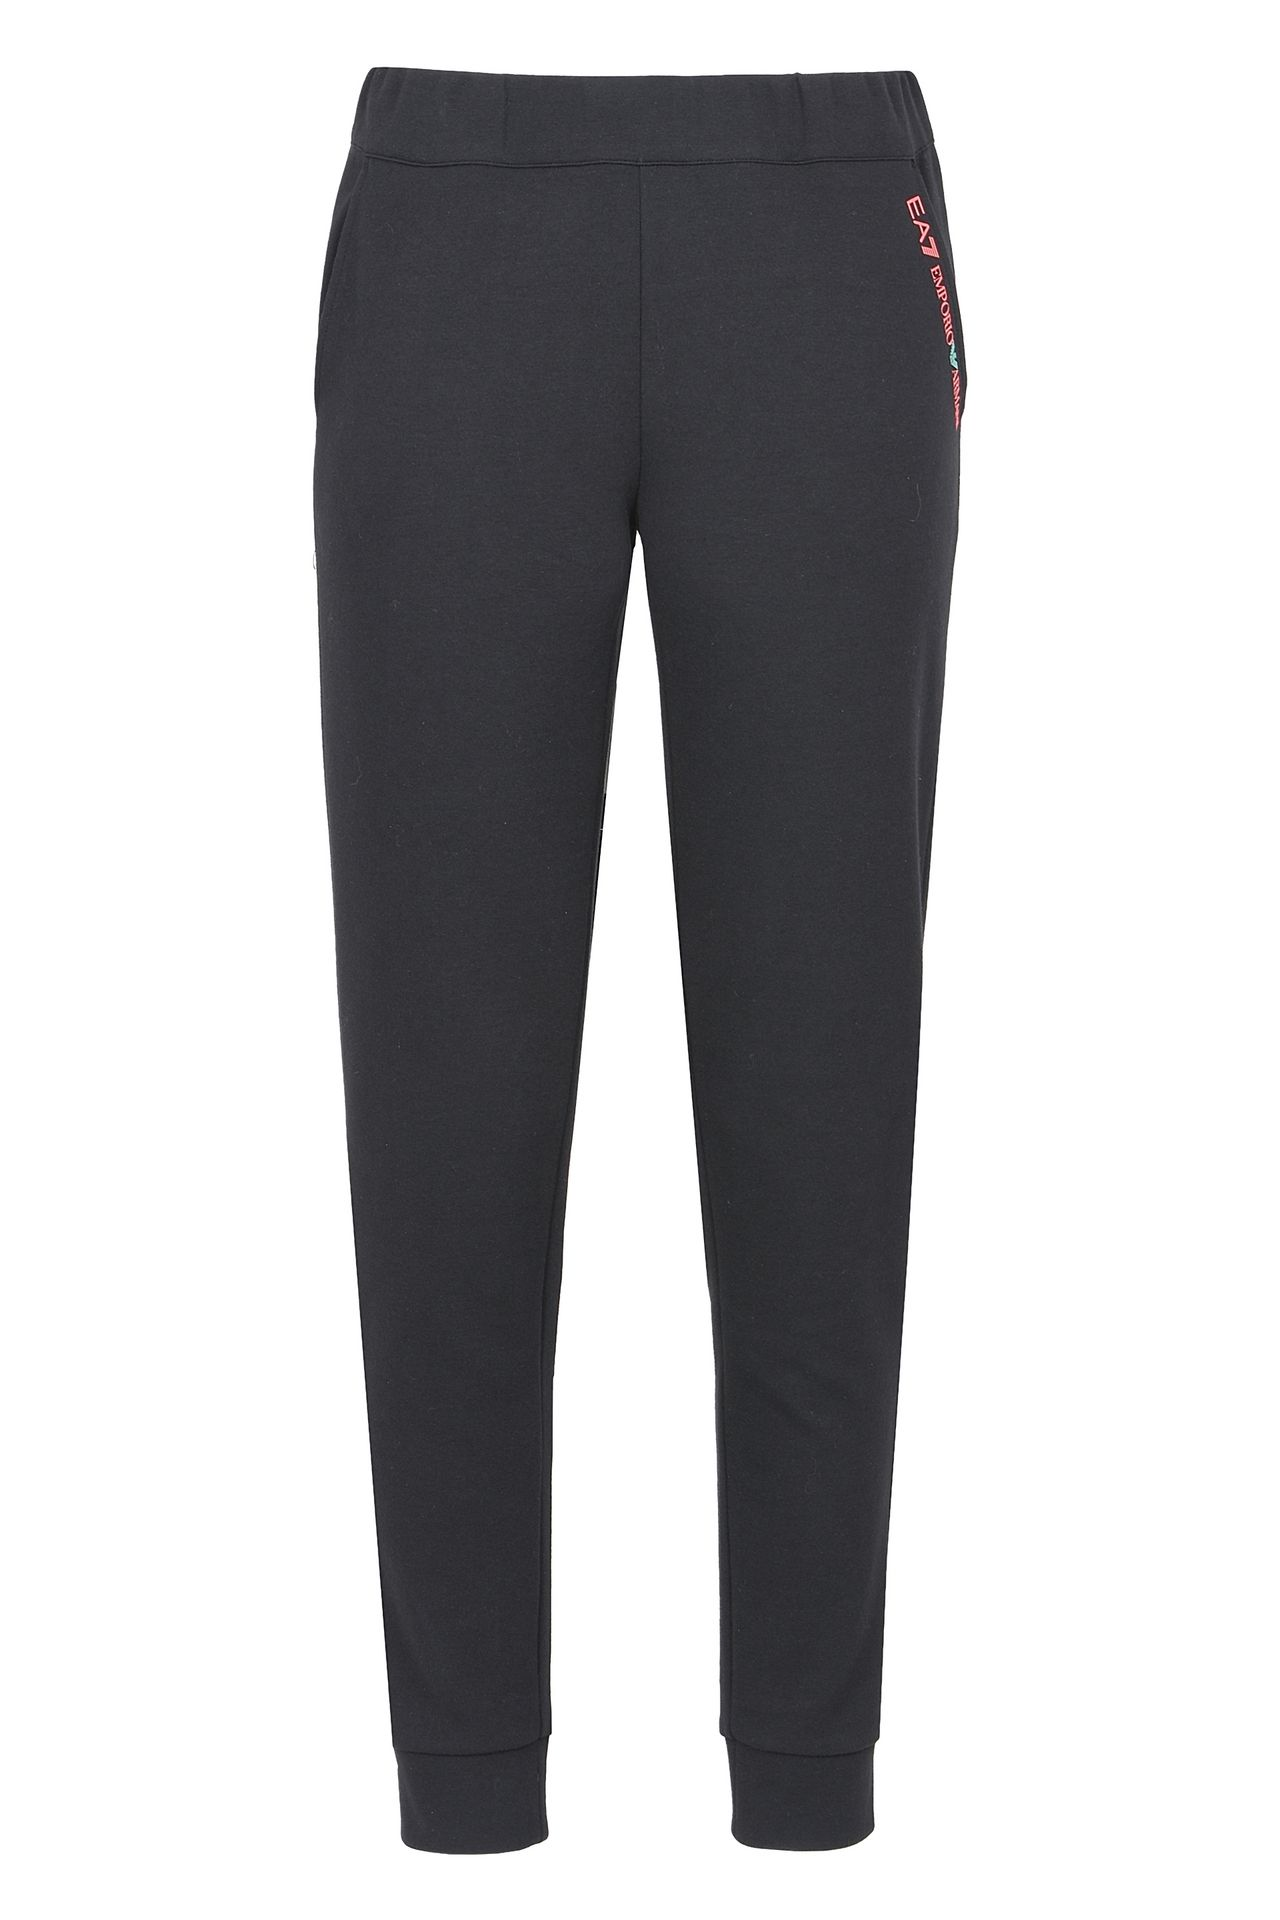 PANTALONI JOGGING IN COTONE : Pants Donna by Armani - 0